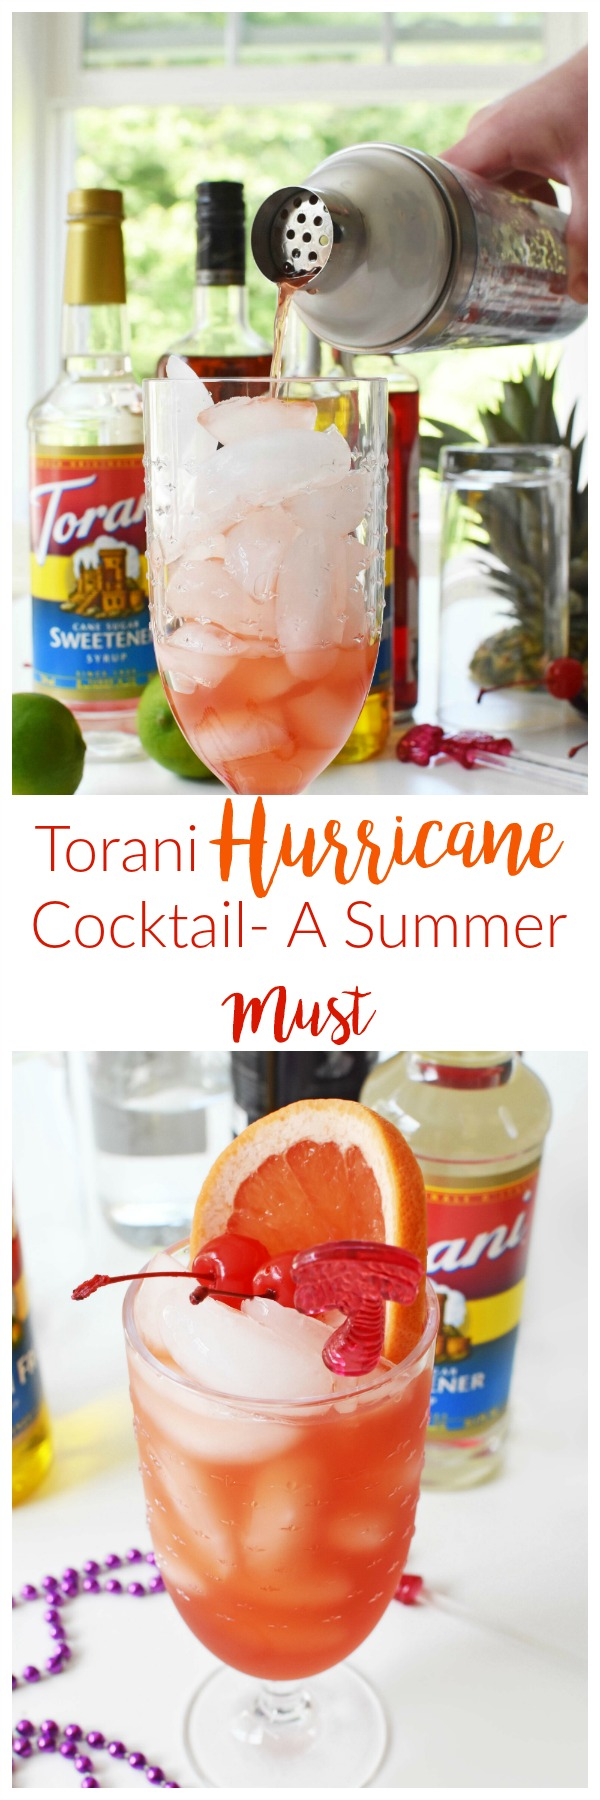 Impress your friends with this tropical, summery, Hurricane Cocktail that features Torani Flavor Syrups and fresh juice.